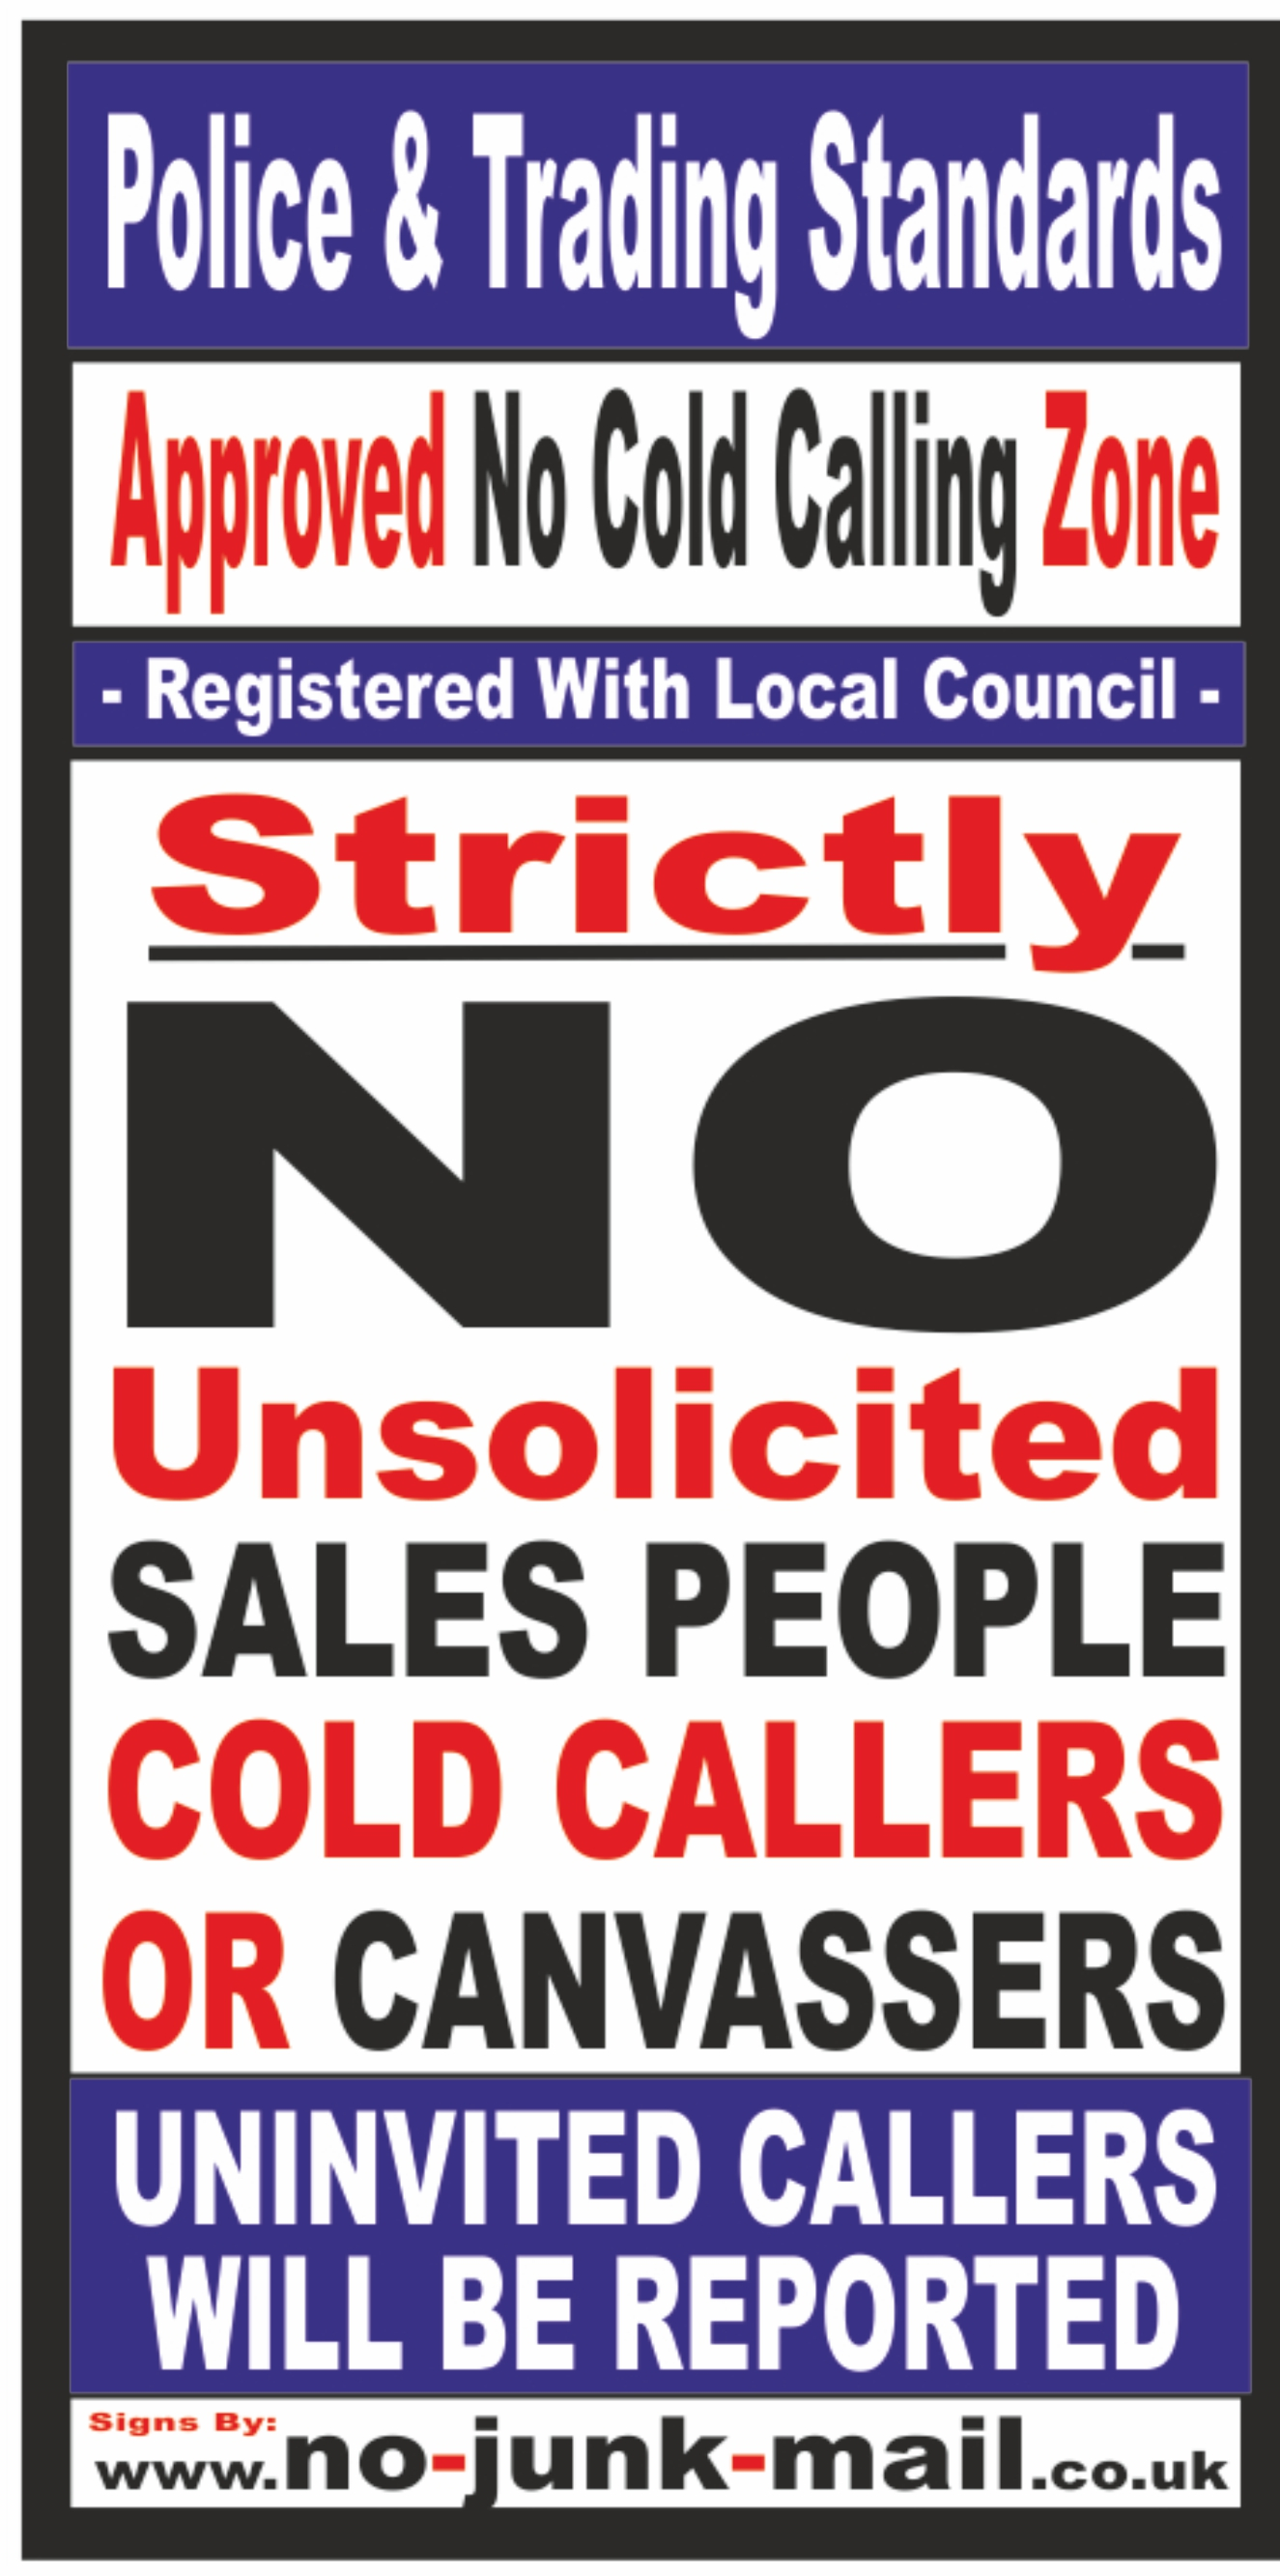 No Cold Calling Zone, No Cold callers,No Cold Calling Sign, No Cold Callers Sign, No Cold Calling Vinyl Sticker, No Canvassing Sign, No Sales People Warning Notice, No Hawkers, No Pedlars, No Charities, No Relious Groups.